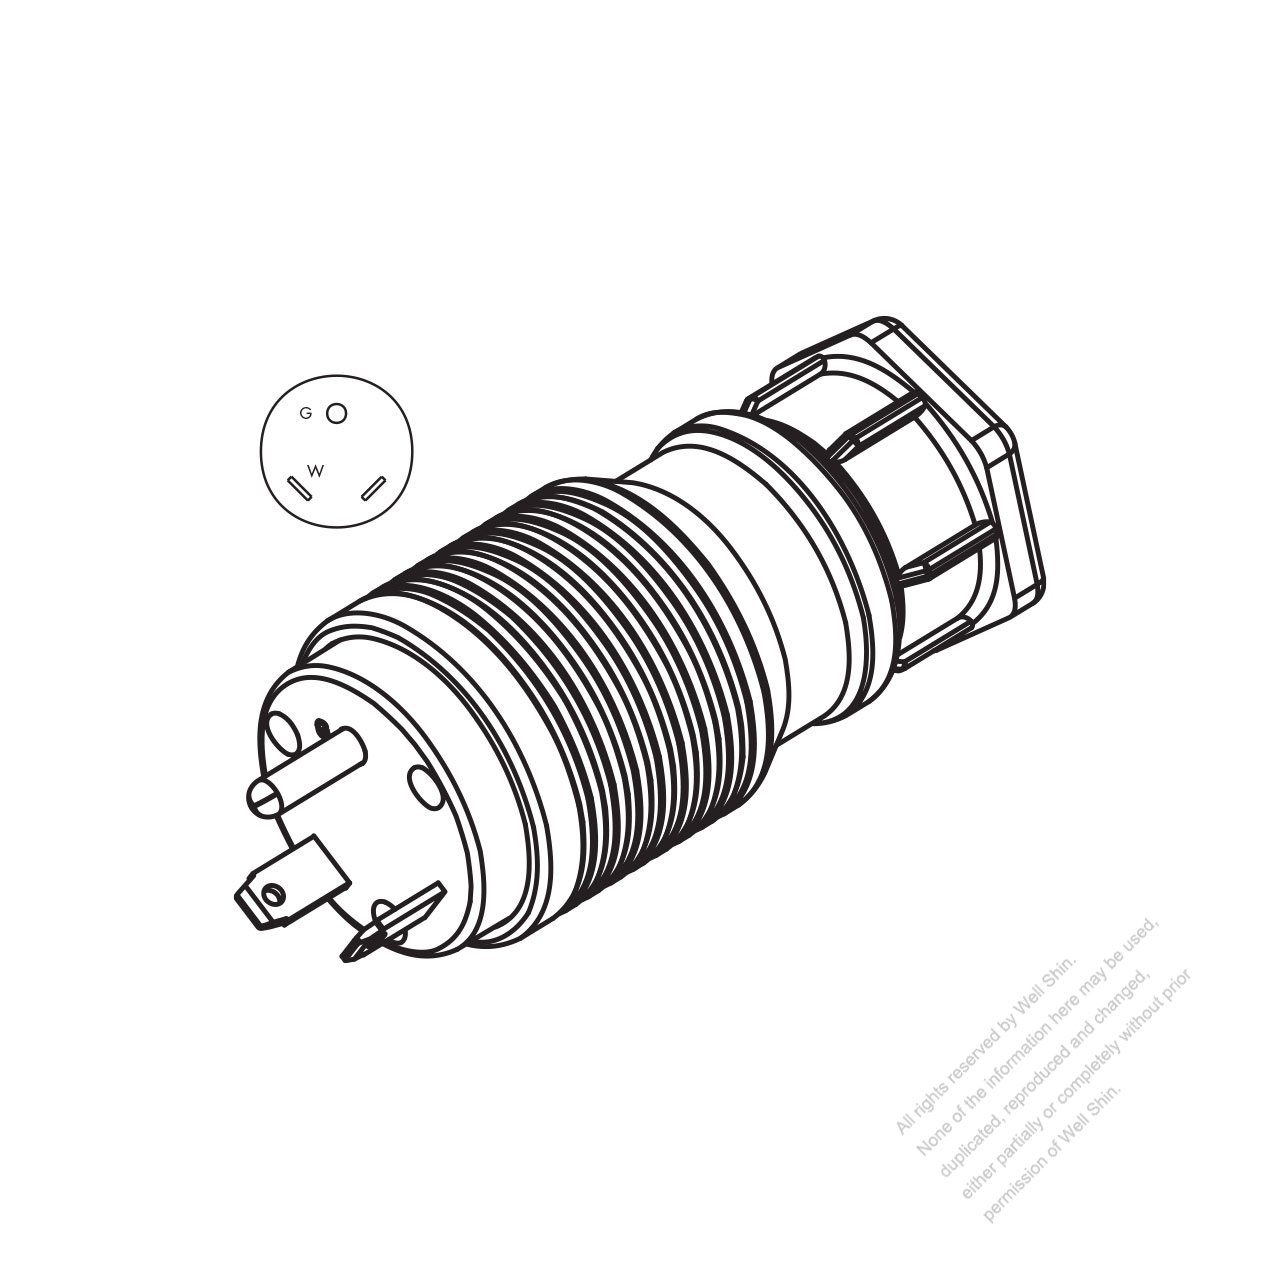 Shovelhead Starter Relay Wiring Diagram further 3 Way Switch Wiring Diagram Animated besides Electrical Sub Panel Wiring Diagram in addition Wiring Diagram Sw  Cooler Motor additionally Lutron Ecosystem Wiring. on garage gfci wiring diagram